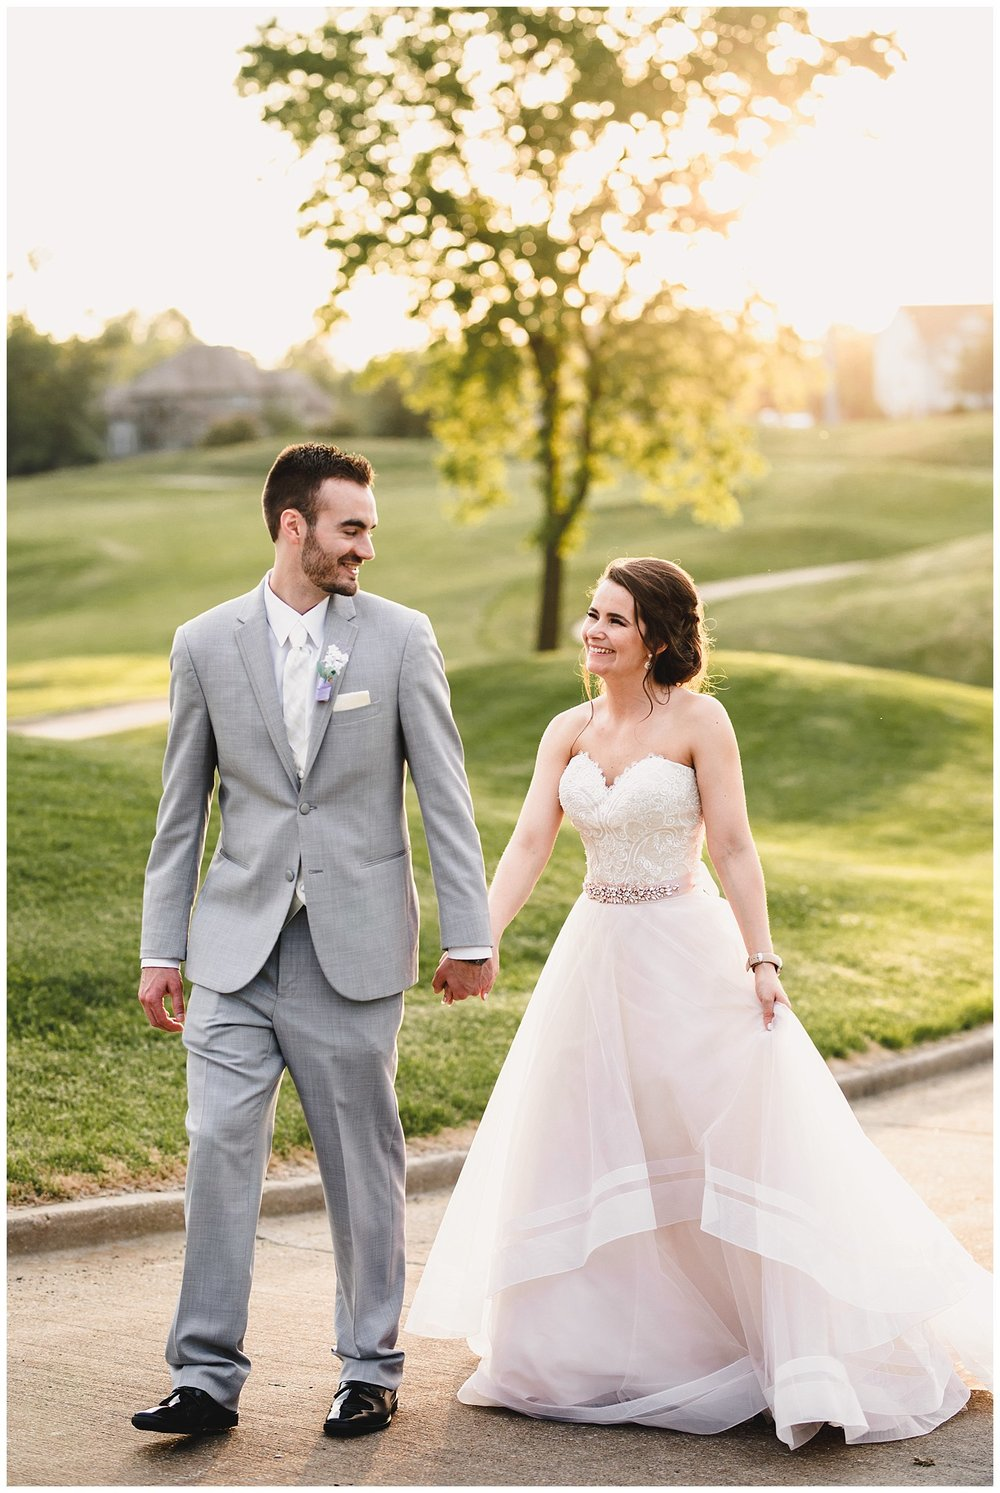 Tiffany_Greens_Golf_Club_Kansas_City_Wedding_Nikki_David_Spring_Wedding_Kelsey_Diane_Photography_0088.jpg